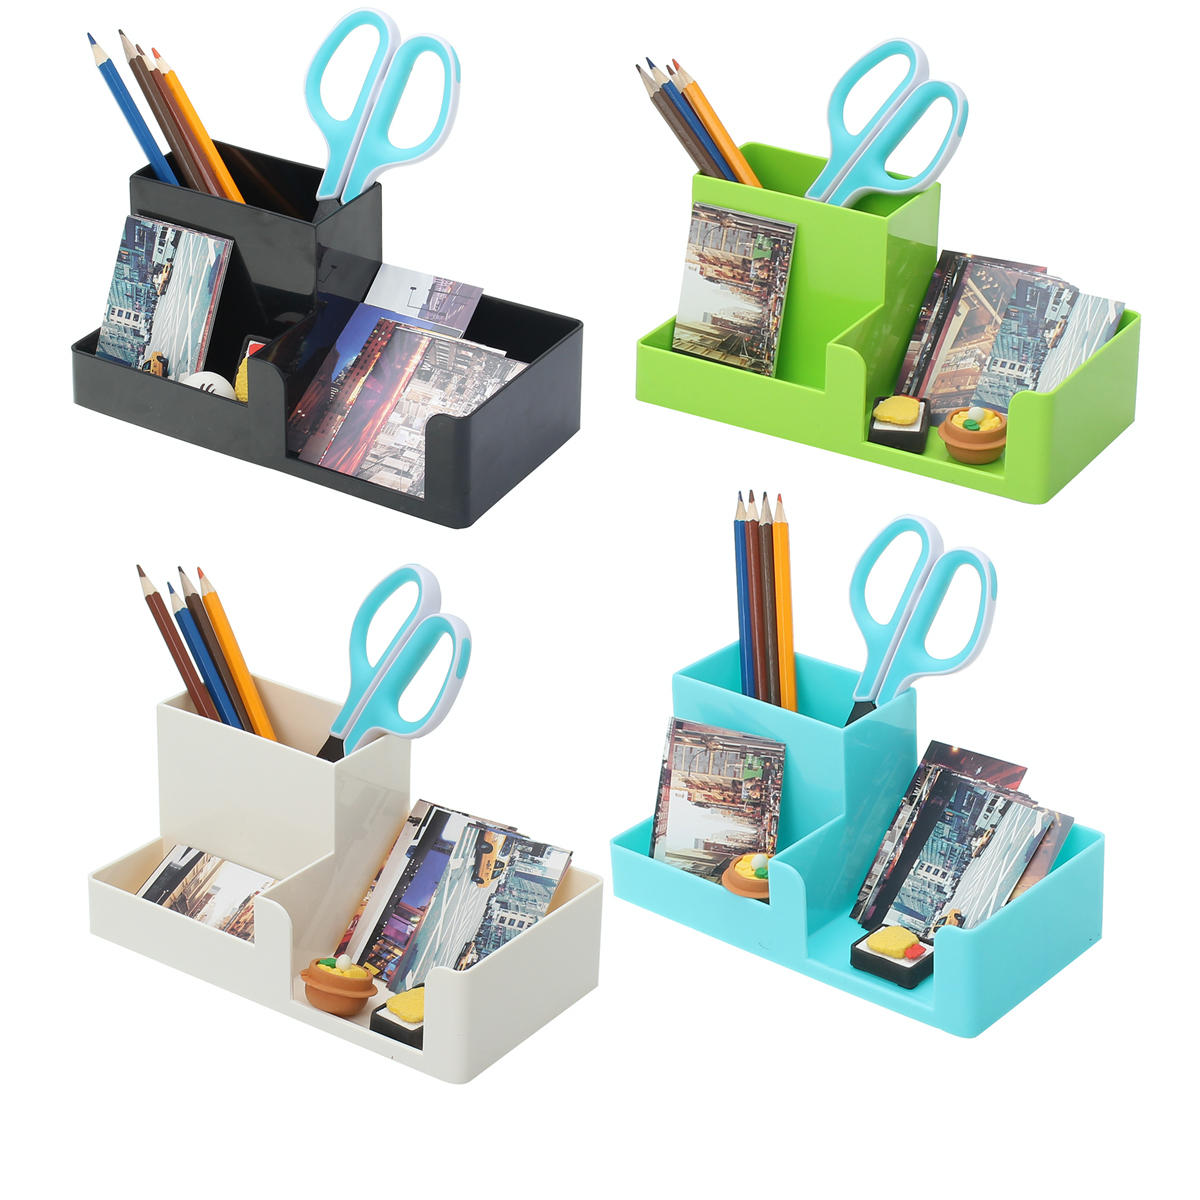 Independent Desk Mesh Pen Pencil Holder Office Supplies Multifunctional Digital Led Pens Storage Desk Accessories & Organizer Pen Holders